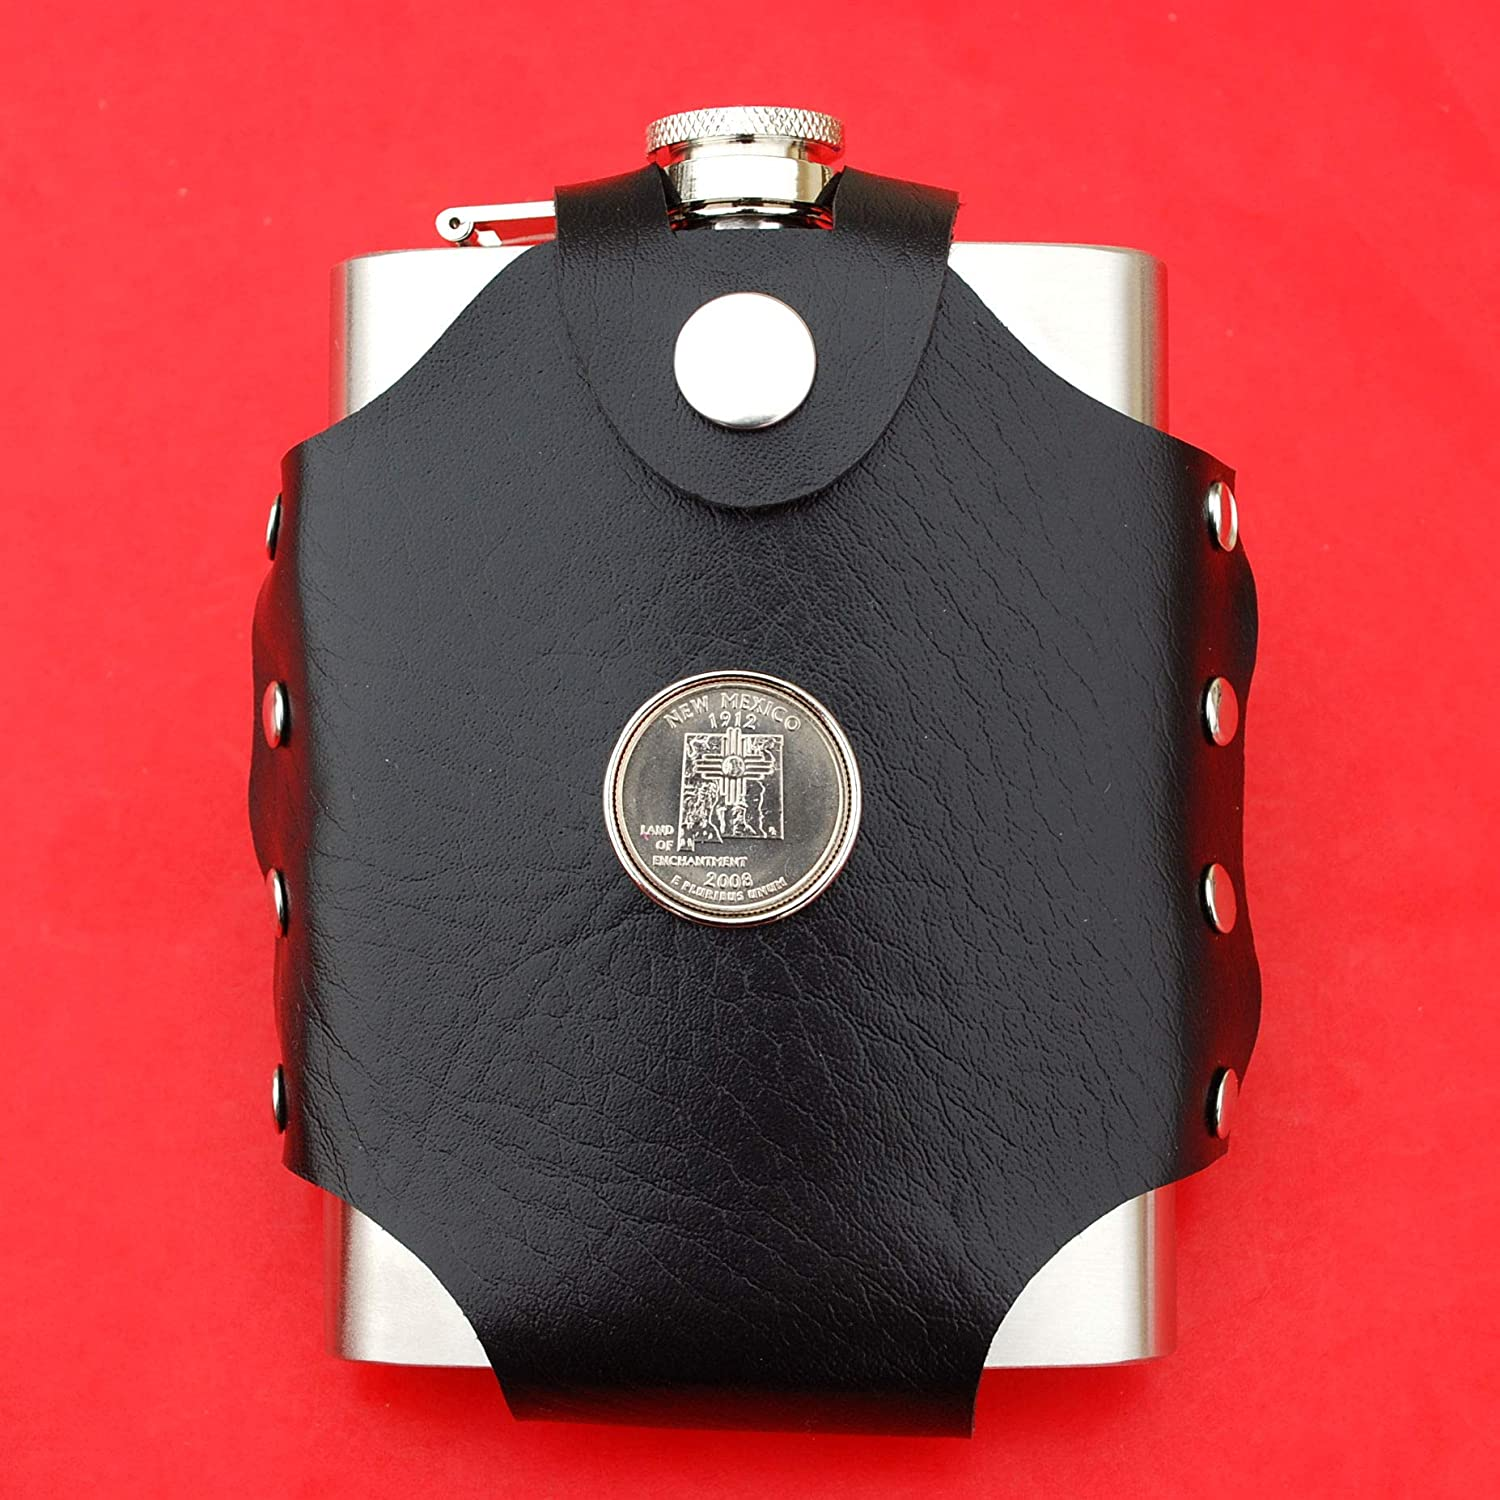 US 2008 New Mexico State Quarter BU Uncirculated Coin Leak Proof Black PU Leather Wrapped Stainless Steel 8 Oz Hip Flask Water Wine etc. Liquor